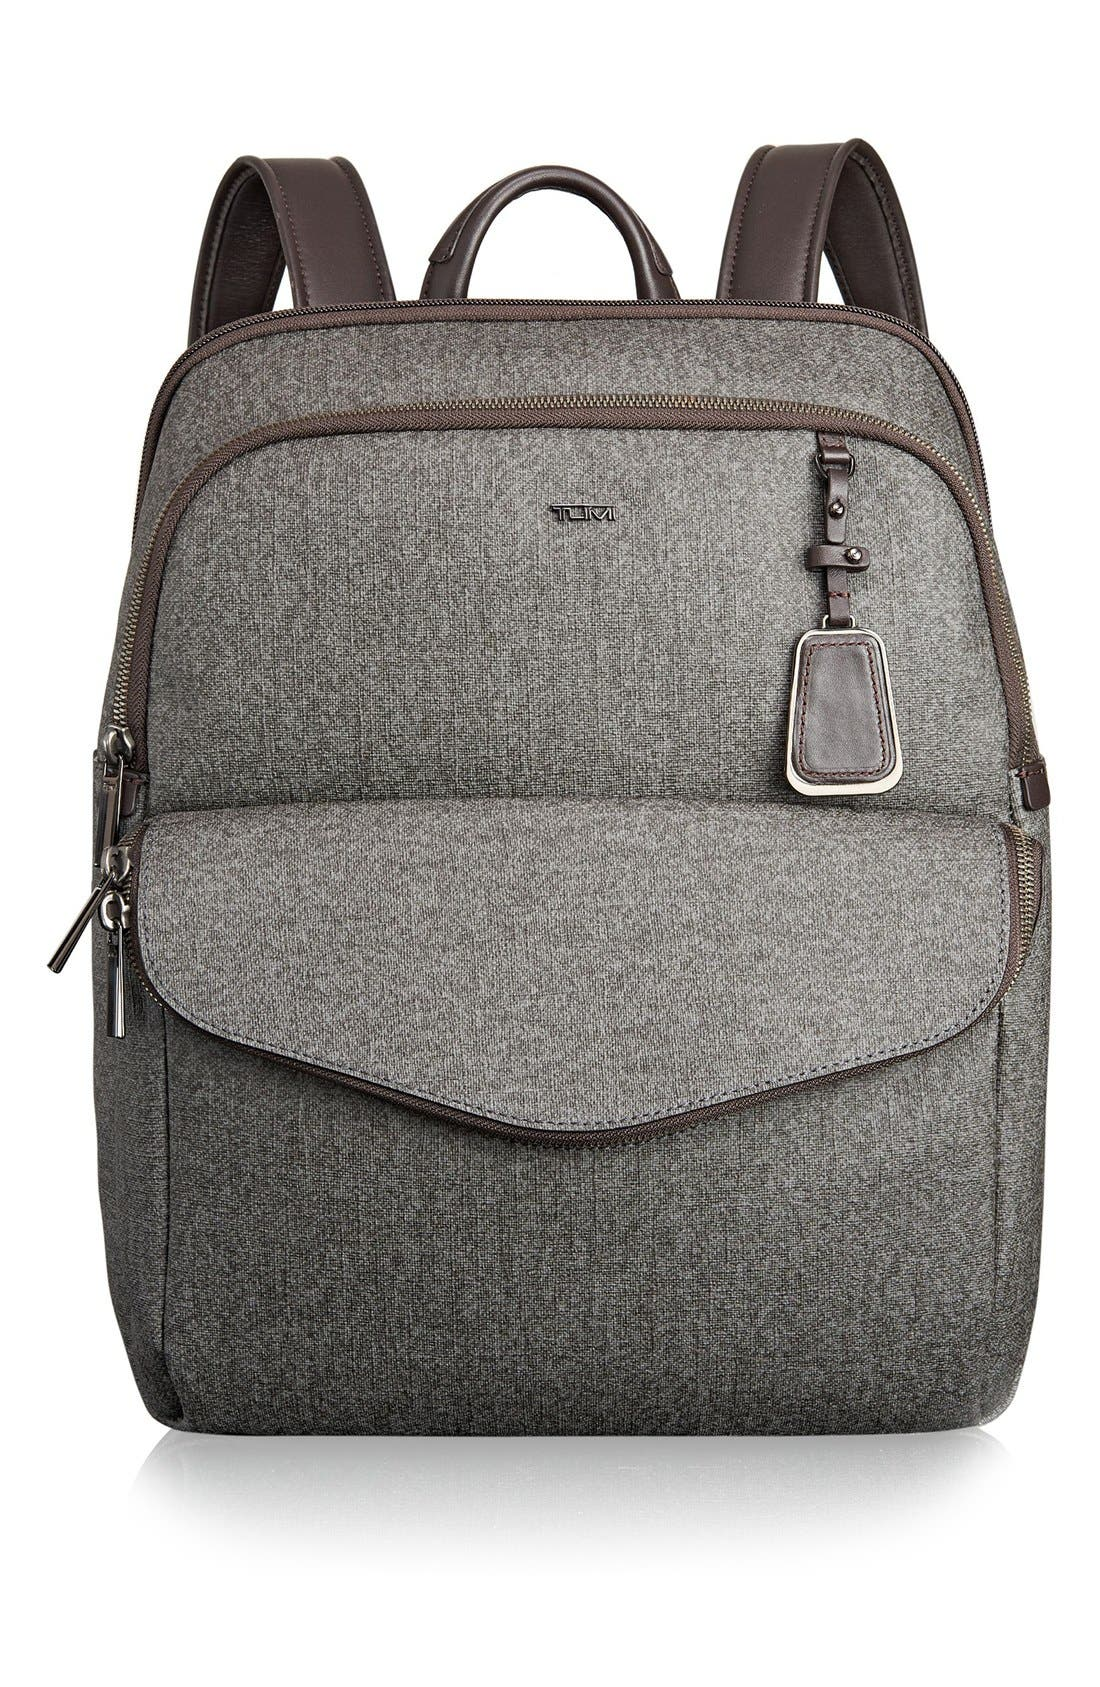 Main Image - Tumi 'Sinclair Harlow' Coated Canvas Laptop Backpack